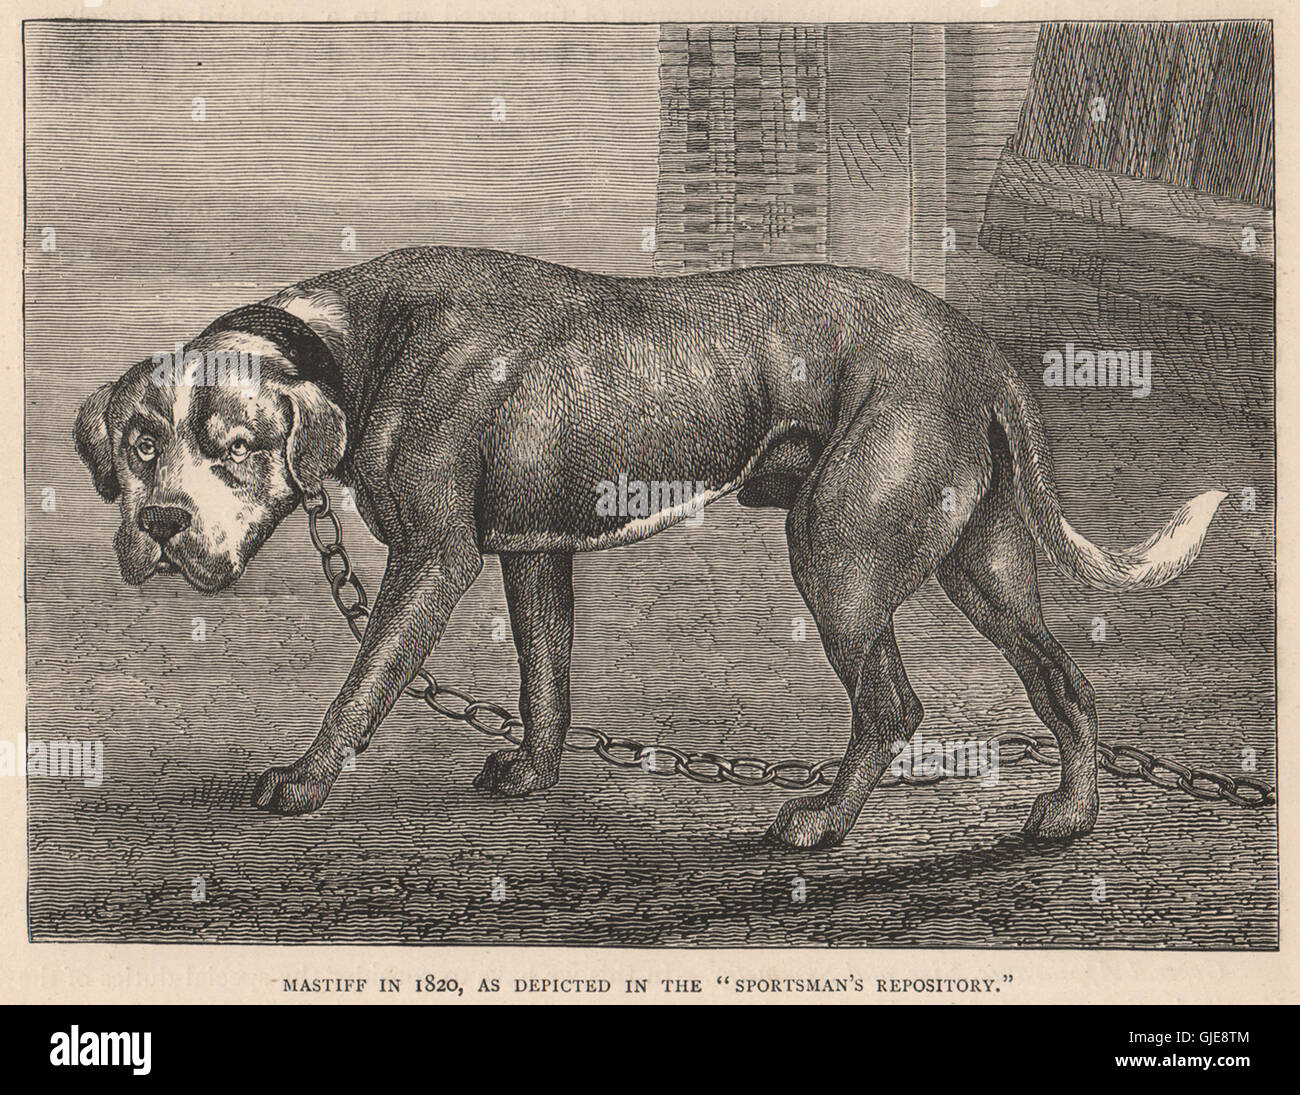 DOGS. Mastiff in 1820, as depicted in the 'Sportsman's repository', print 1881 - Stock Image